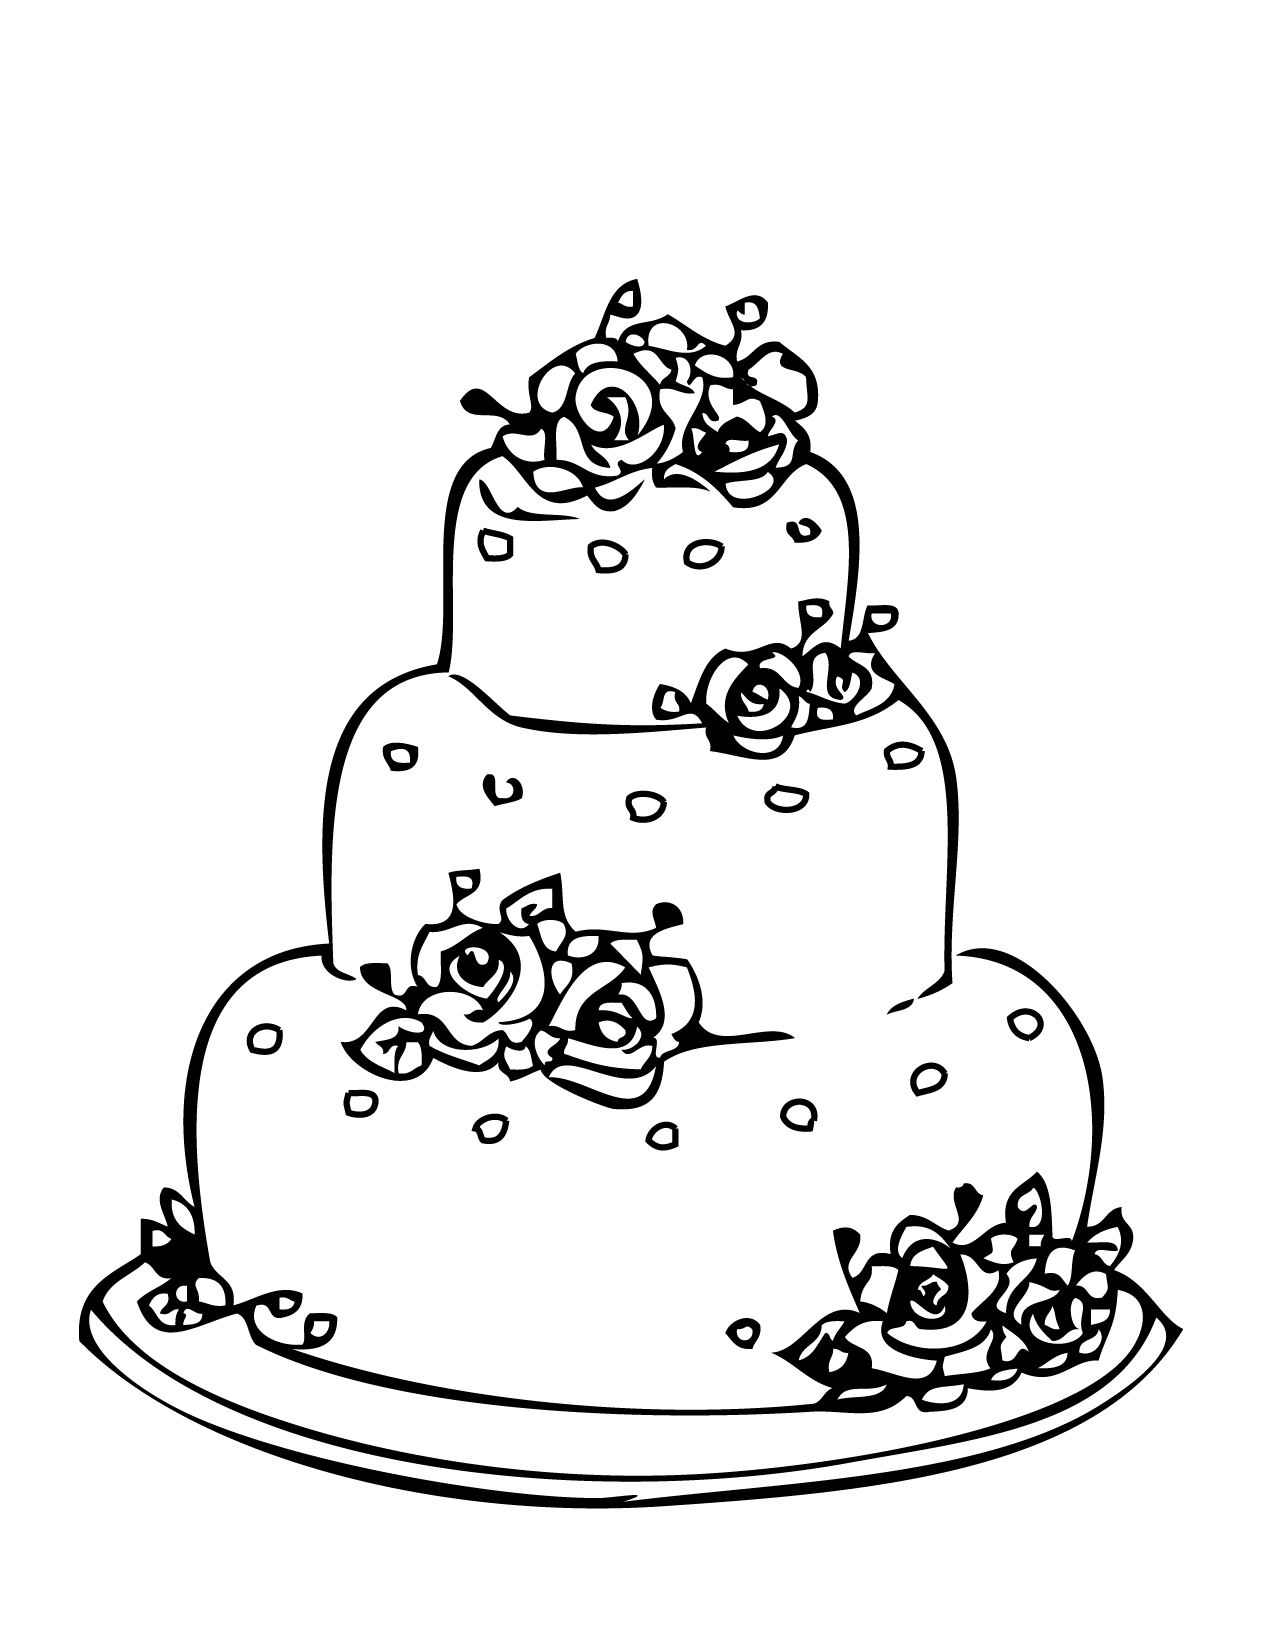 coloring pages cake free printable birthday cake coloring pages for kids coloring cake pages 1 1